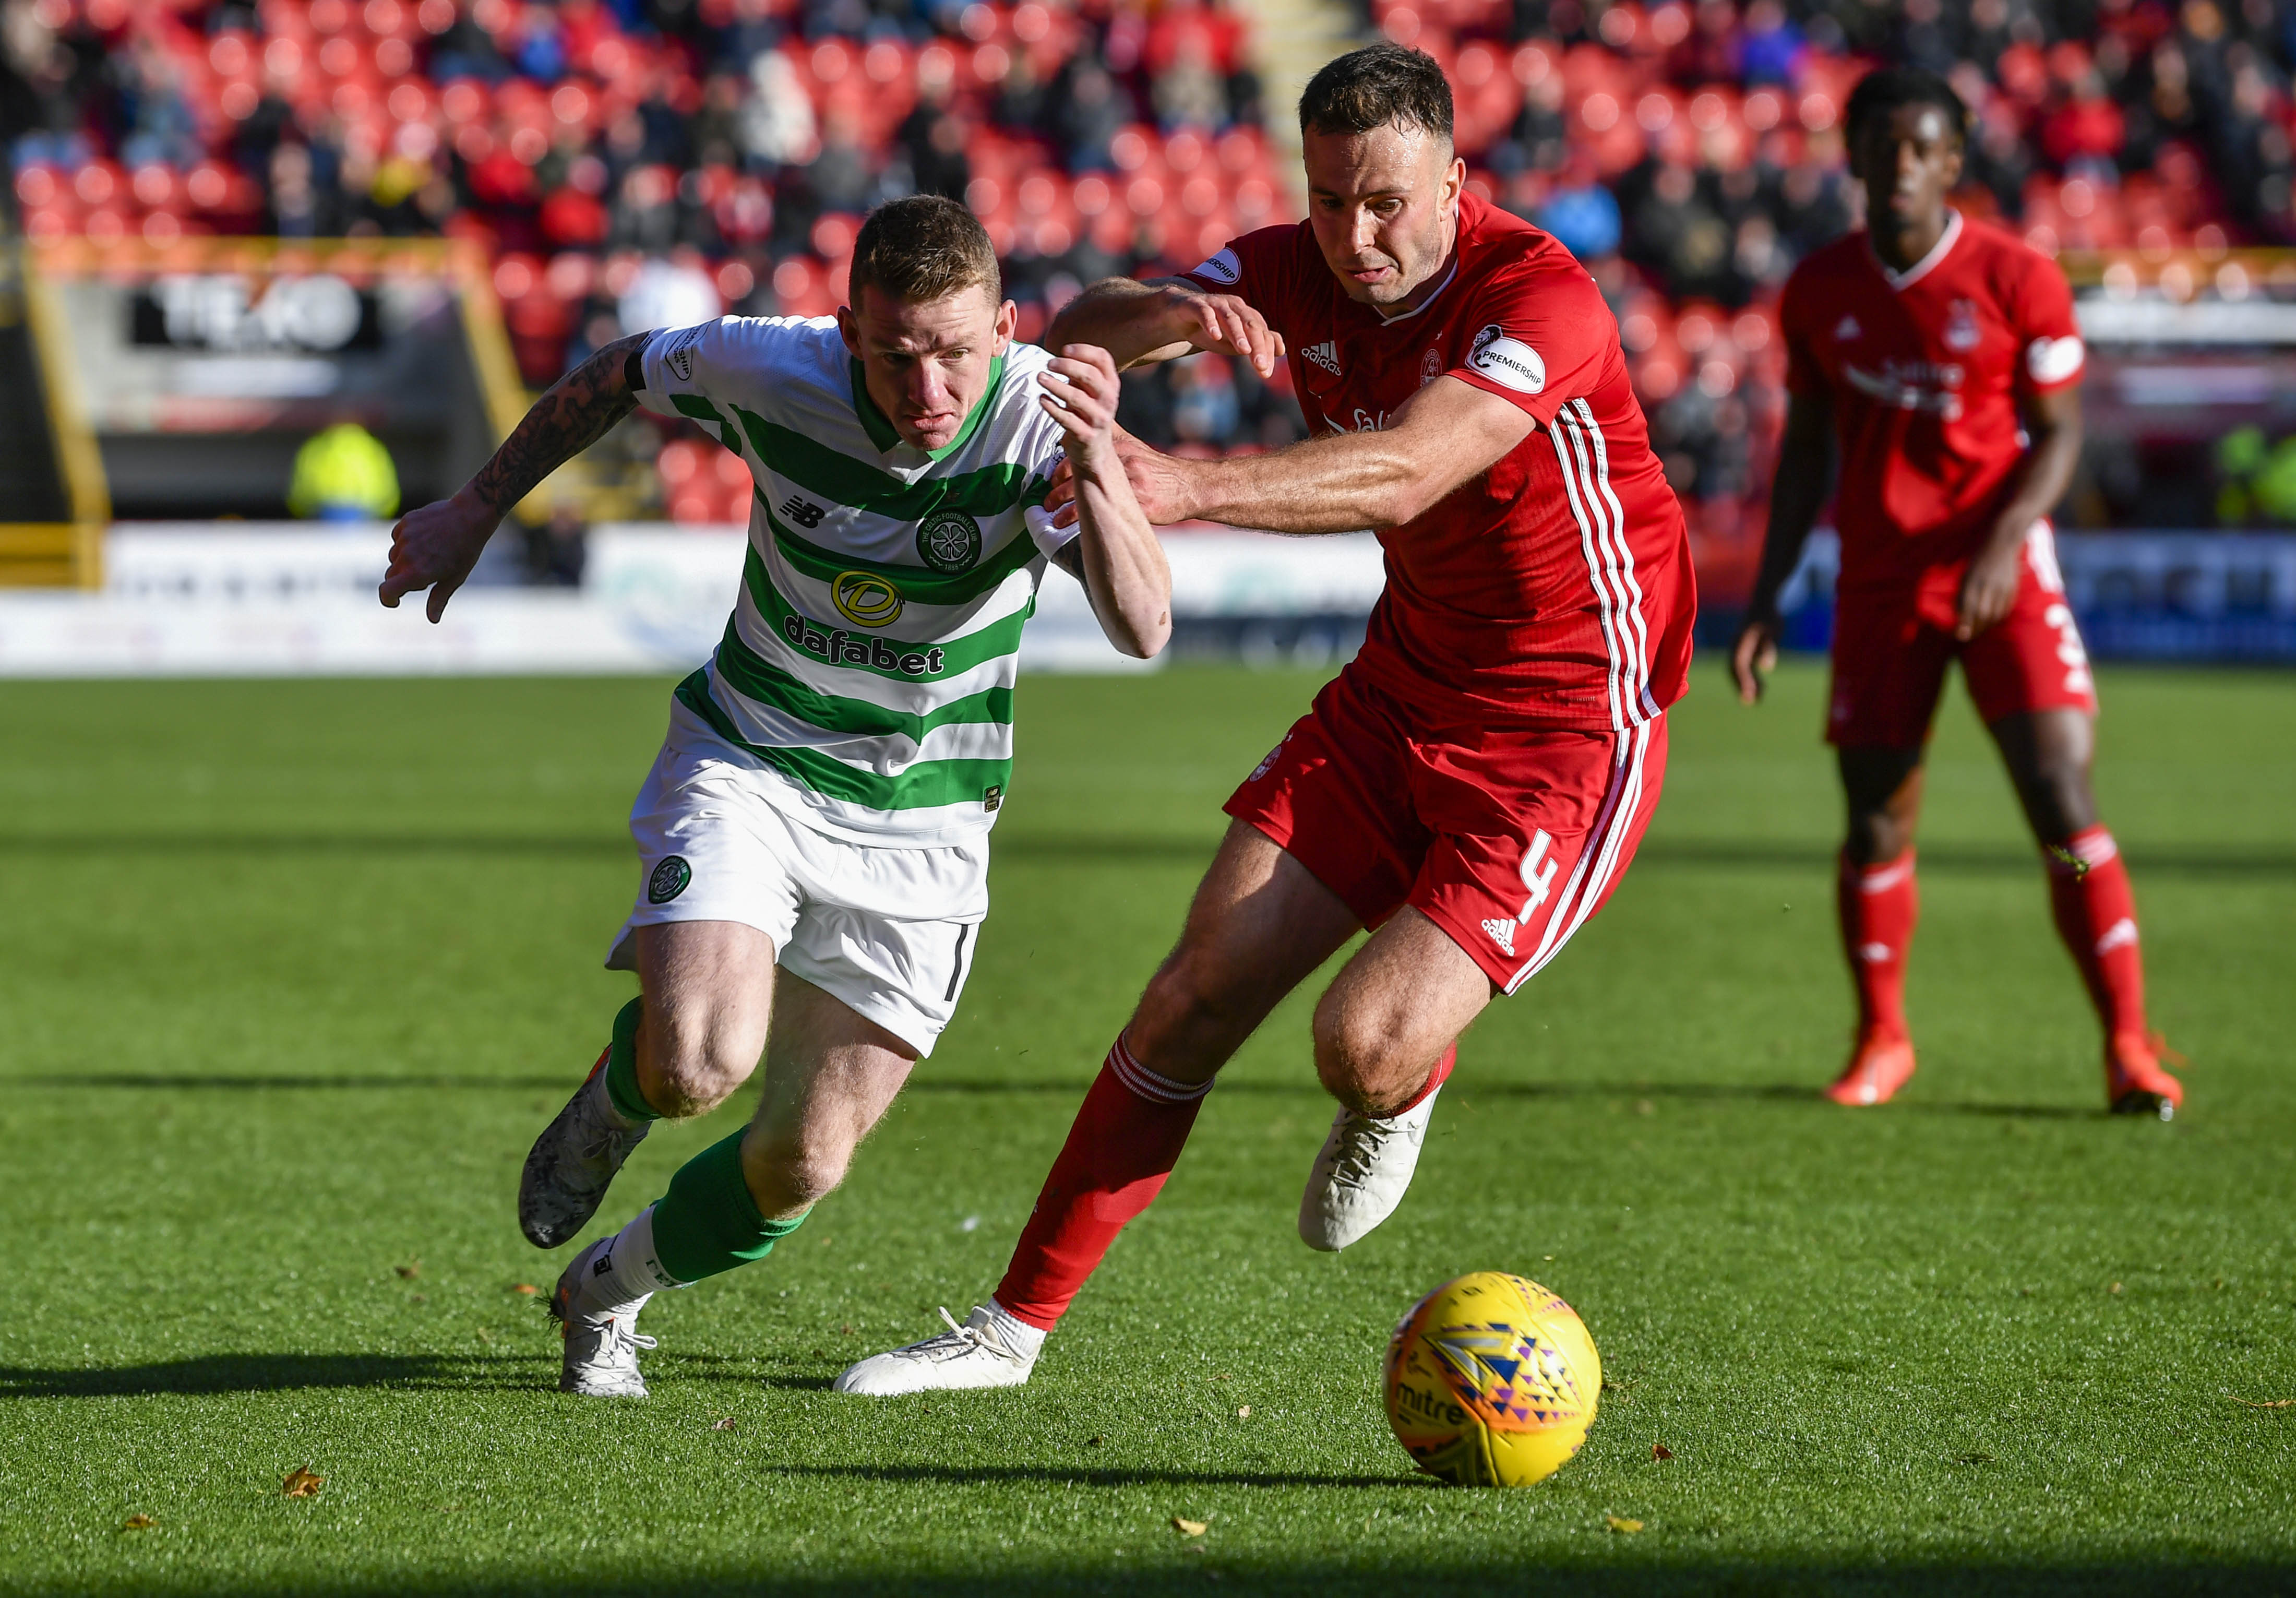 Aberdeen's Andrew Considine in action with Celtic's Jonny Hayes.